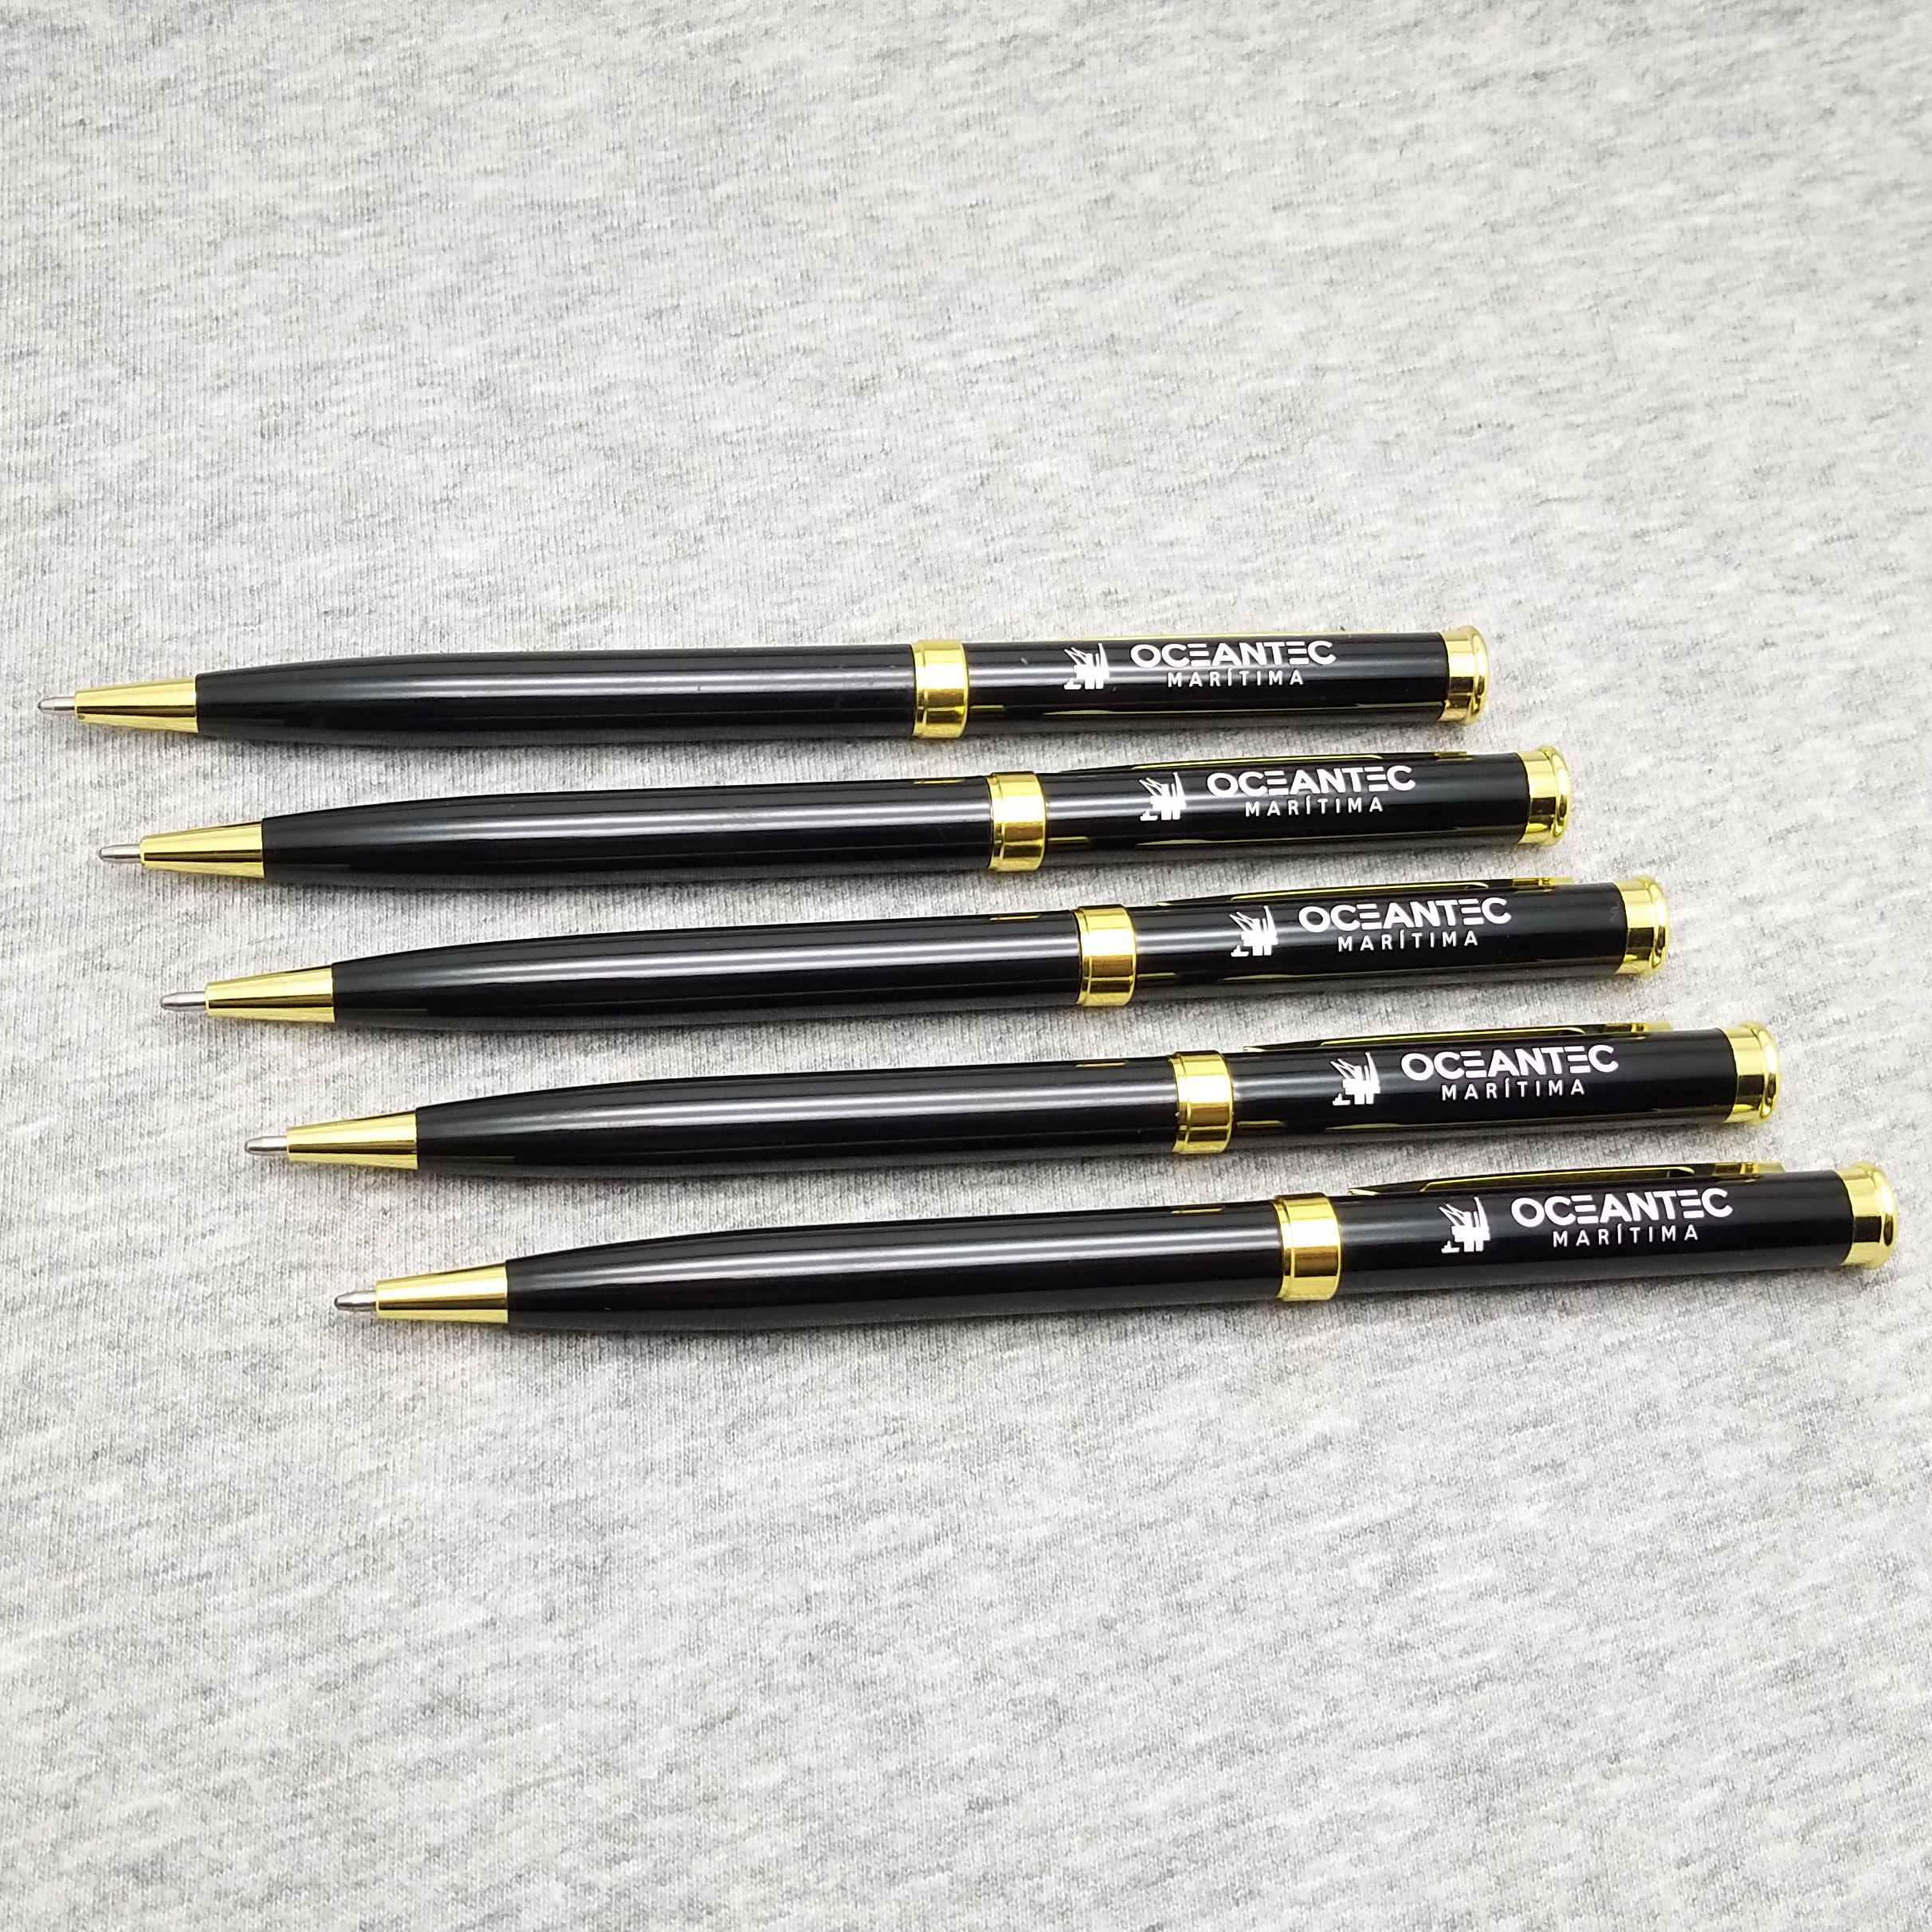 100pcs wedding souvenir pen metal rollerpen custom with your own logo text best company new year Anniversary gifts